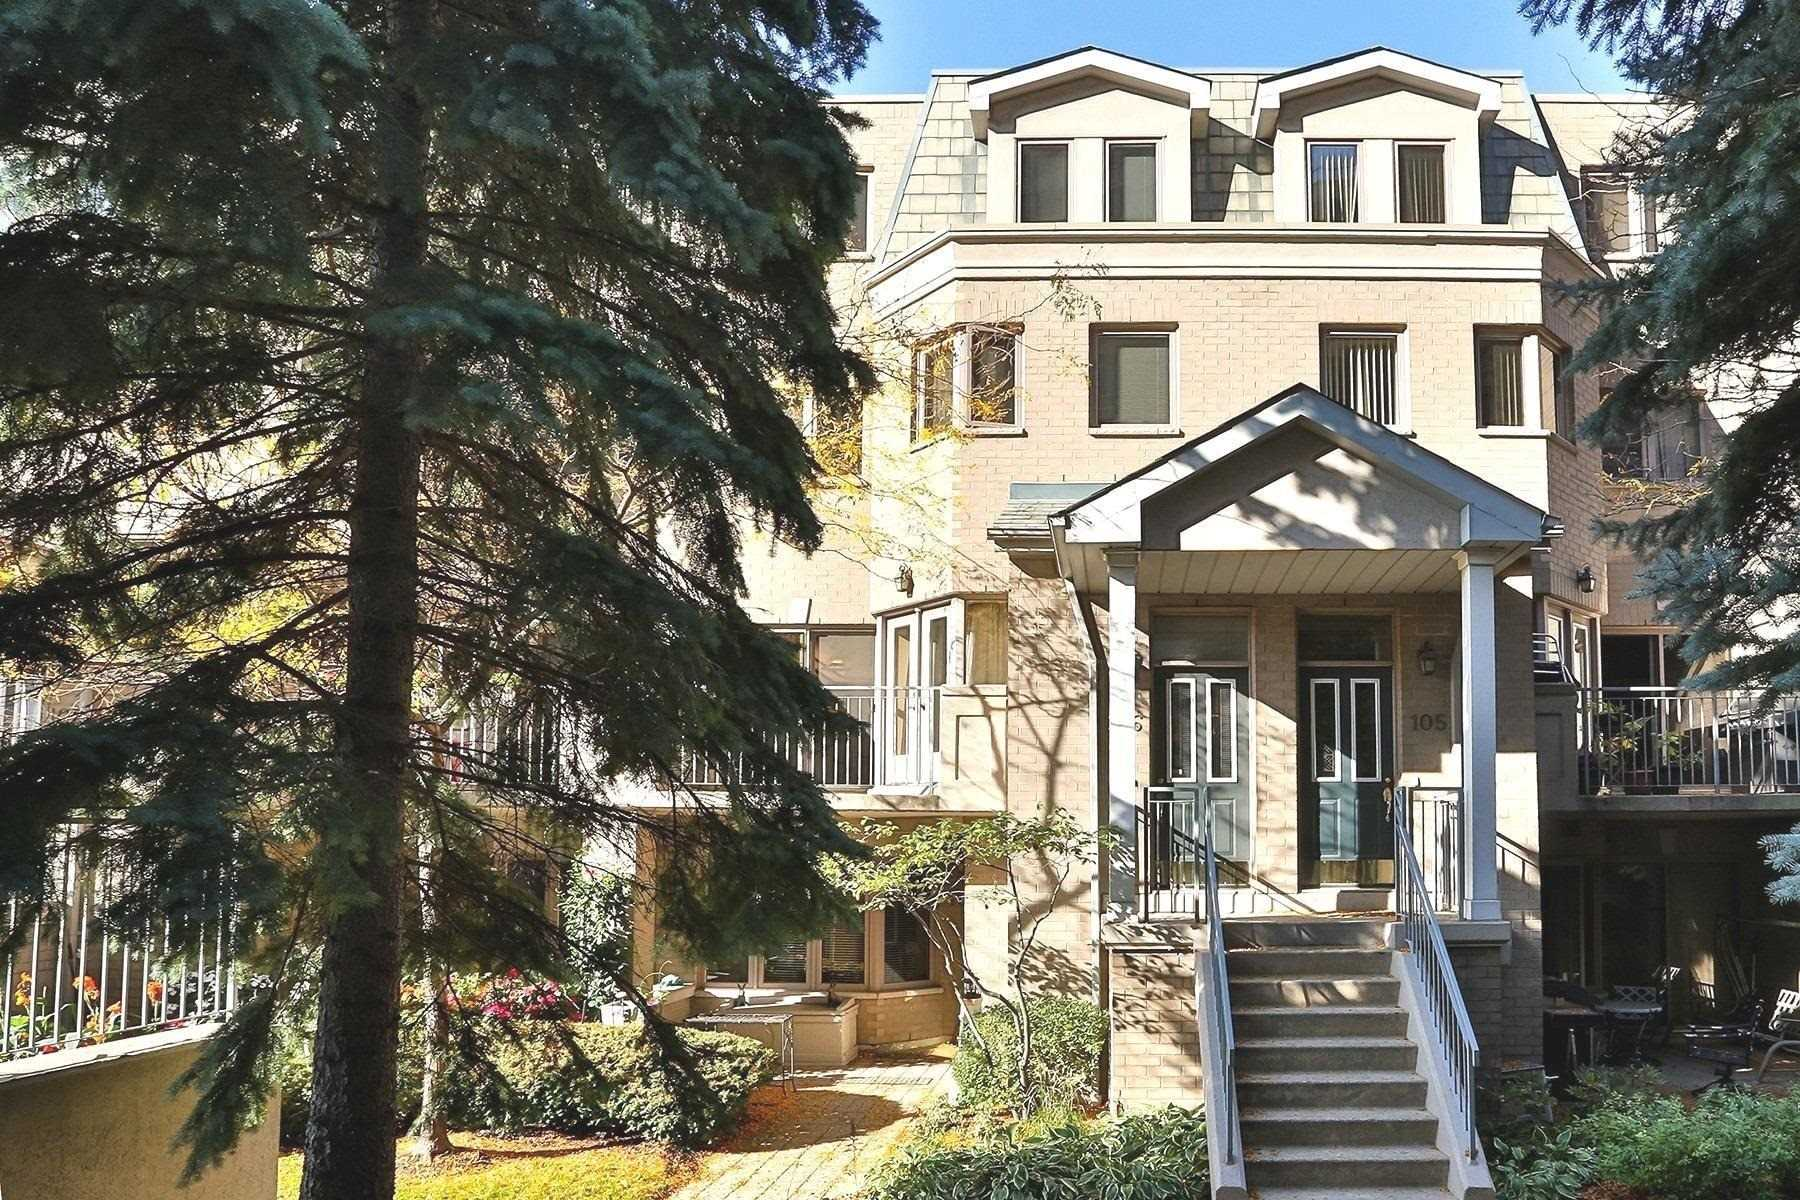 Condo Townhouse For Sale In Toronto , 3 Bedrooms Bedrooms, ,3 BathroomsBathrooms,Condo Townhouse,For Sale,106,Yonge